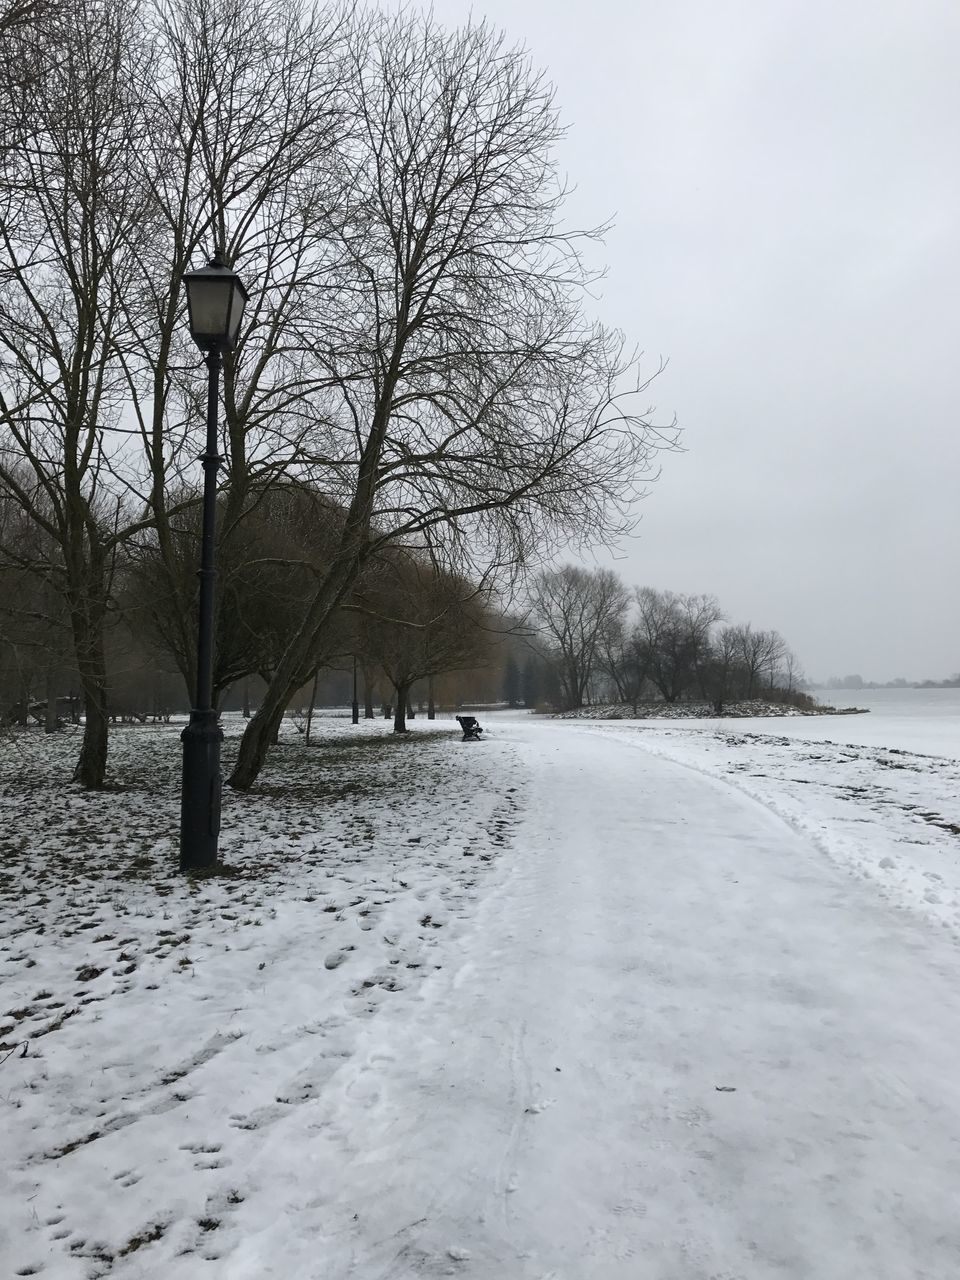 winter, cold temperature, snow, bare tree, weather, nature, cold, tree, frozen, outdoors, tranquility, beauty in nature, landscape, day, tranquil scene, scenics, road, sky, branch, no people, snowing